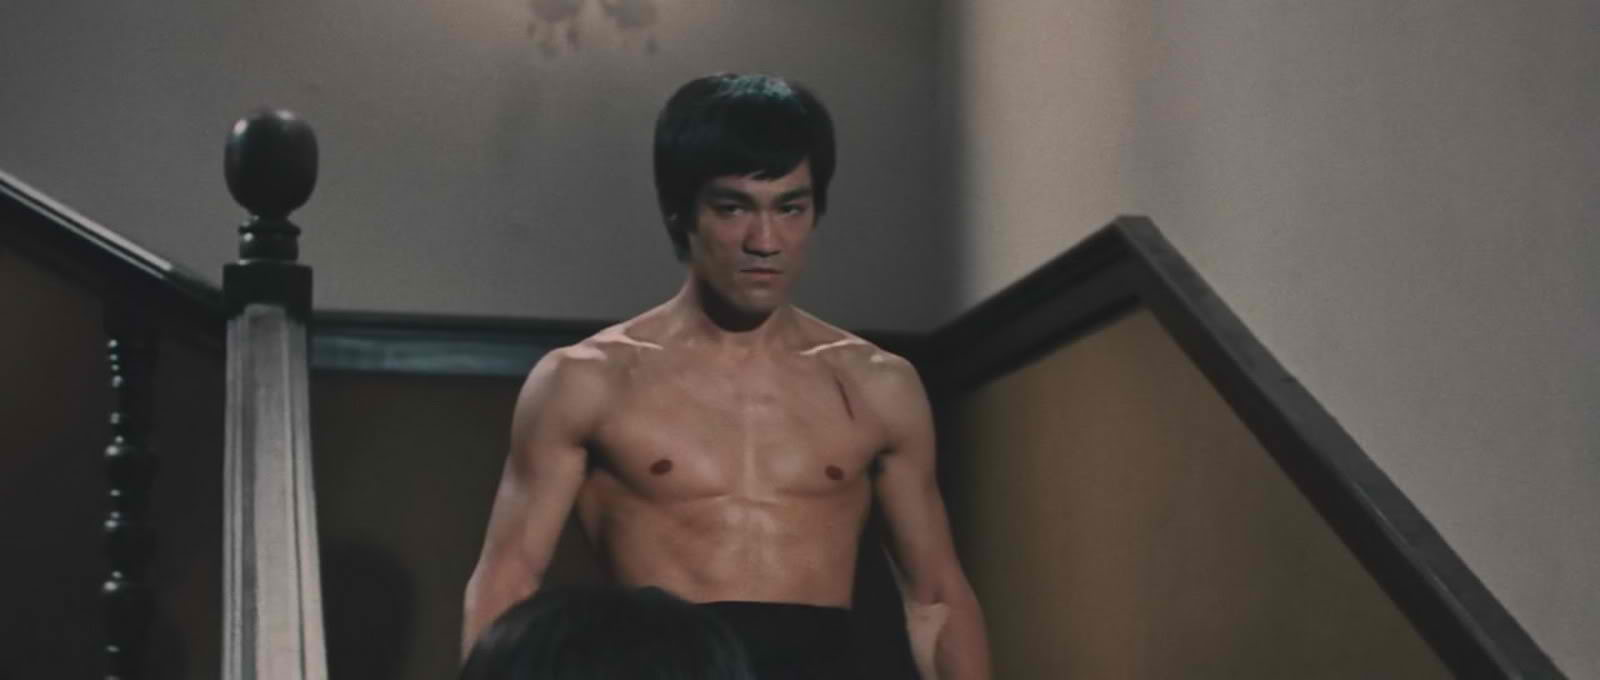 Dragon fist bruce lee